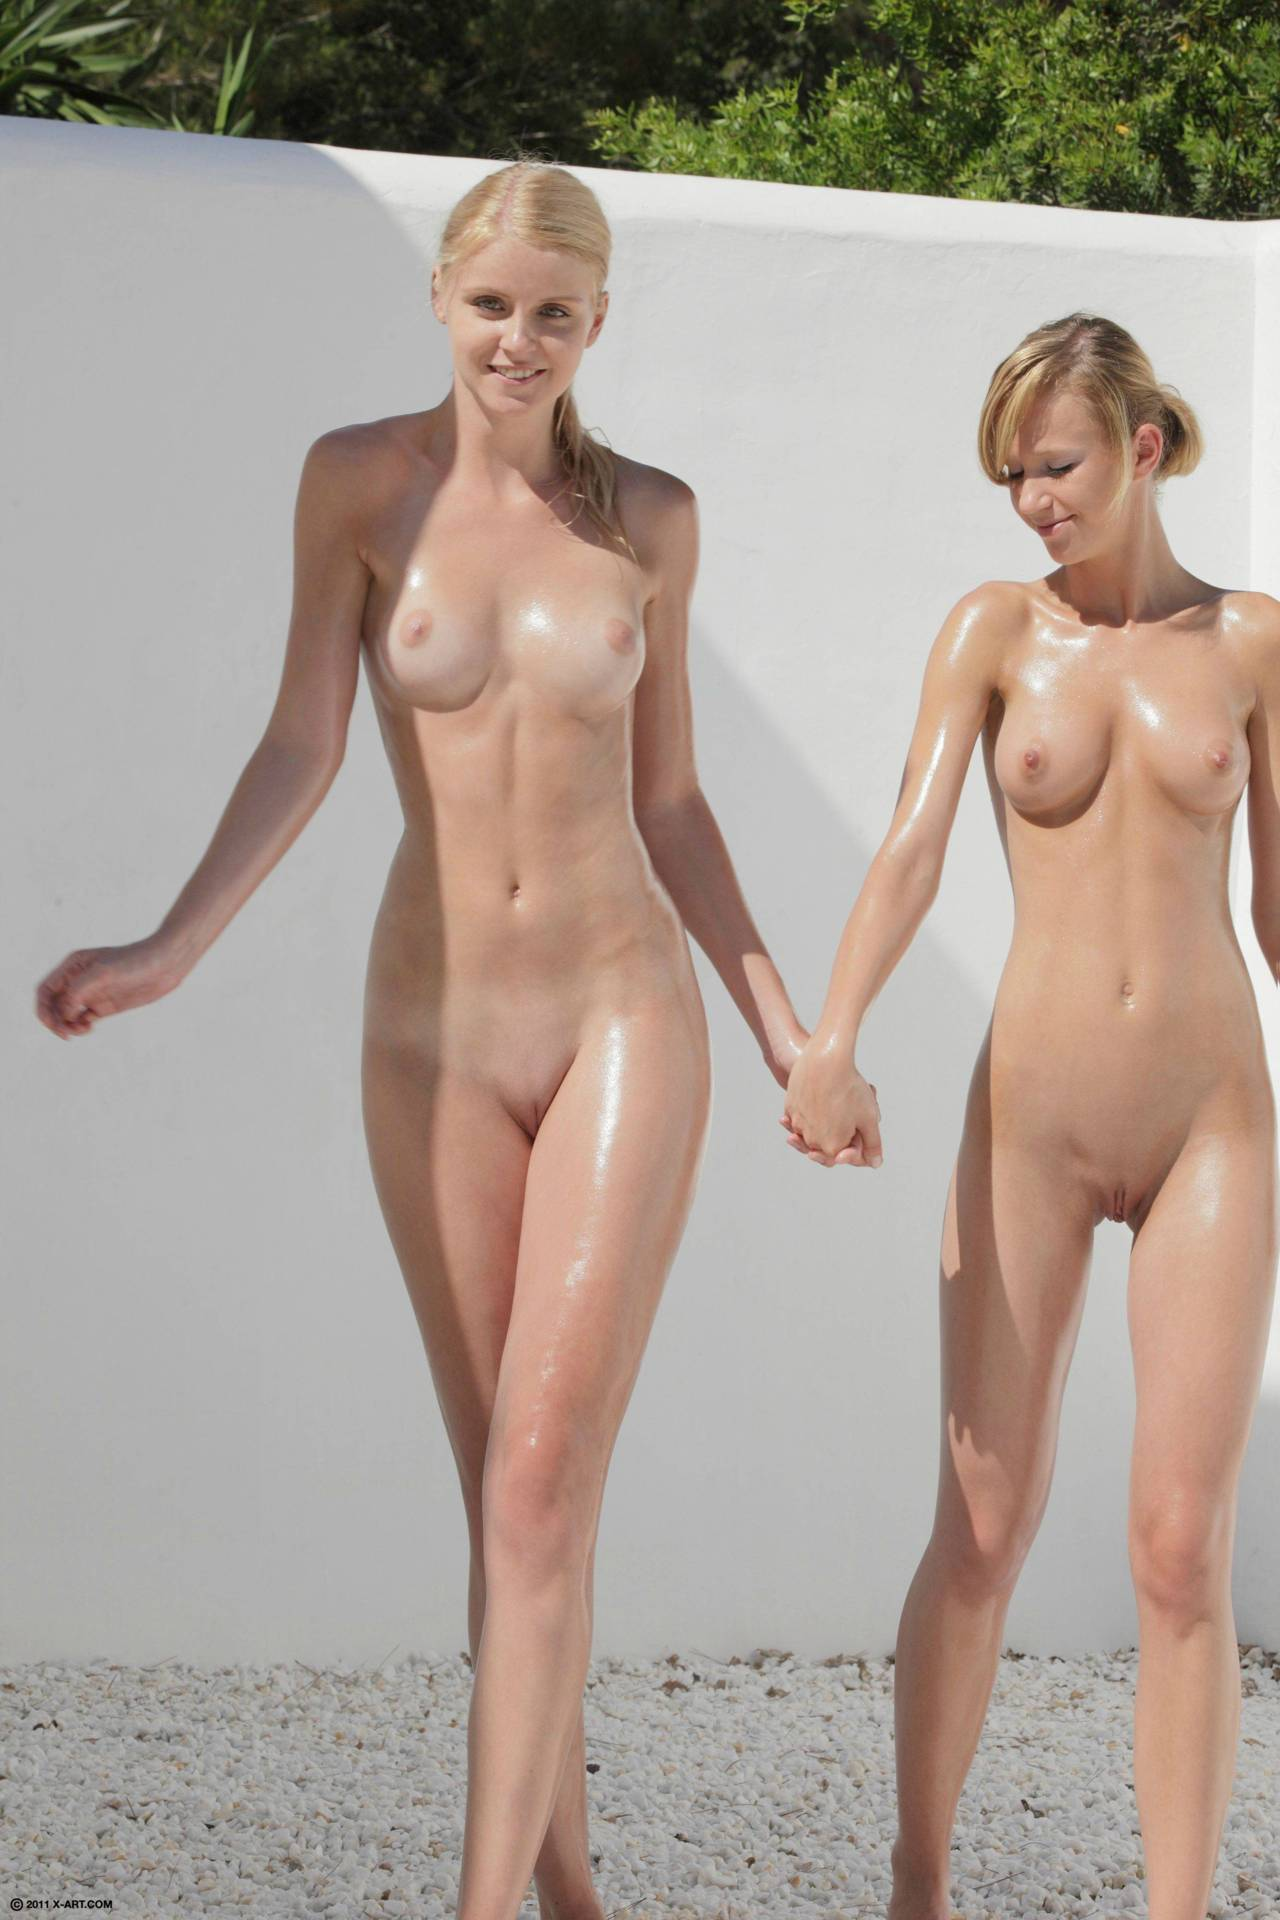 With Nude interracial couple holding hands